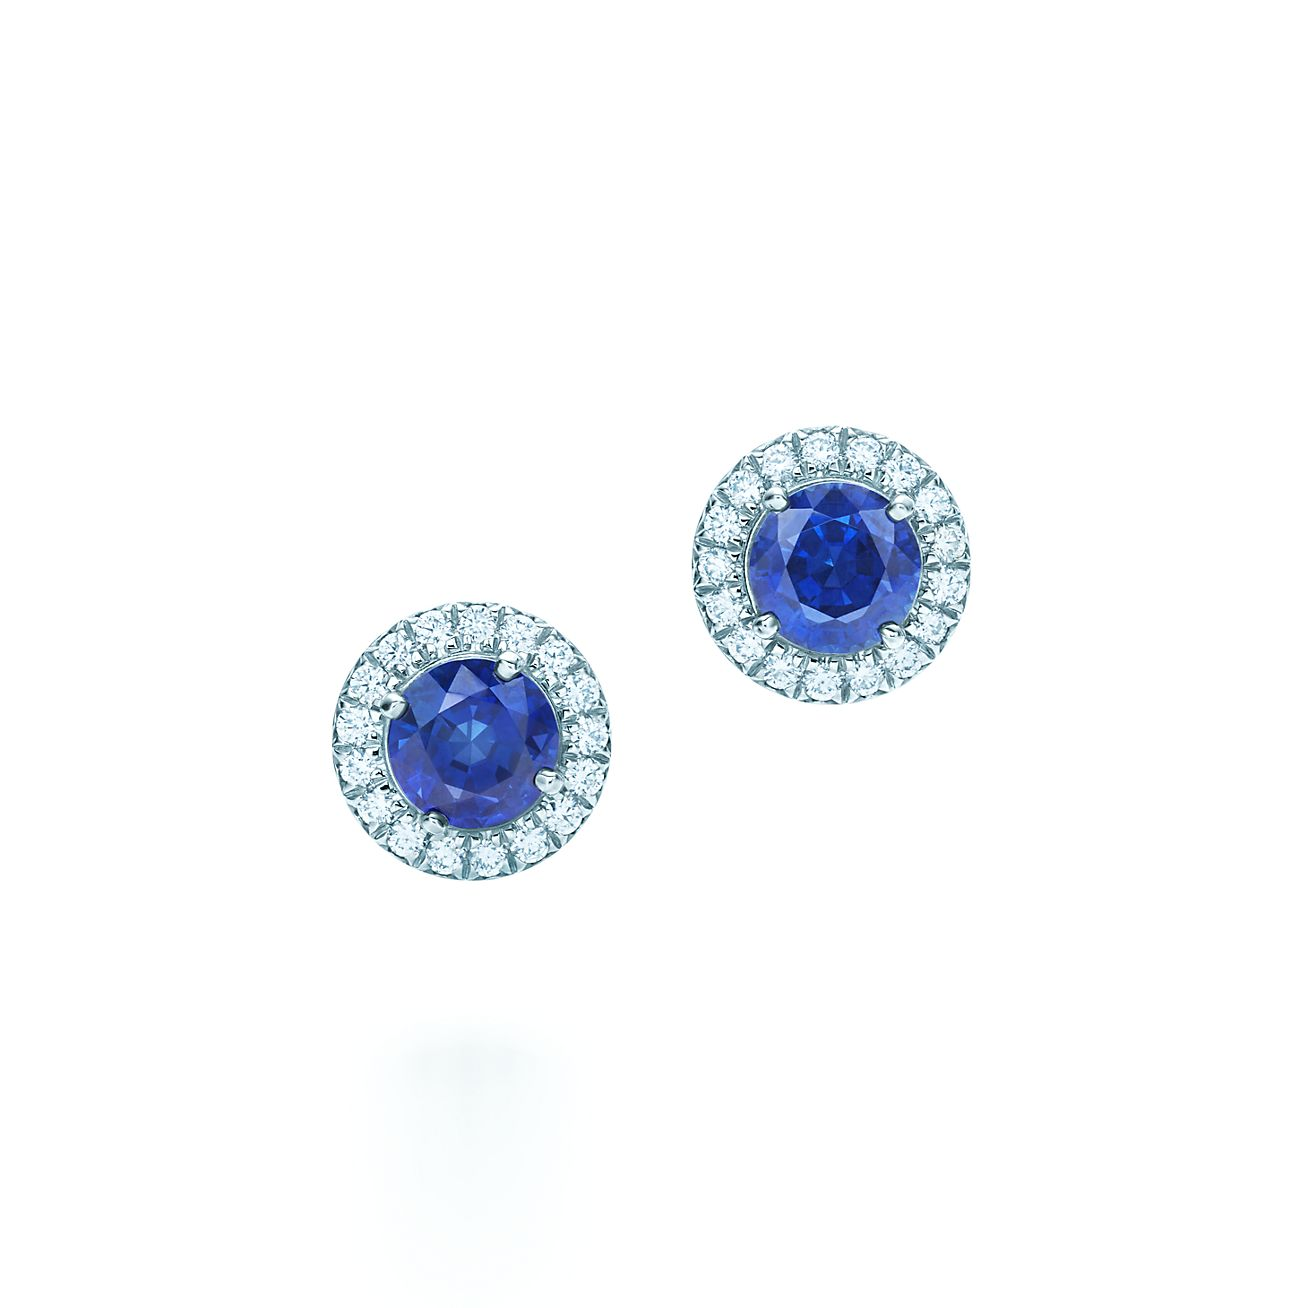 bling blue cz sa sapphire jewelry earring saphire earrings color marquise k teardrop sterling silver